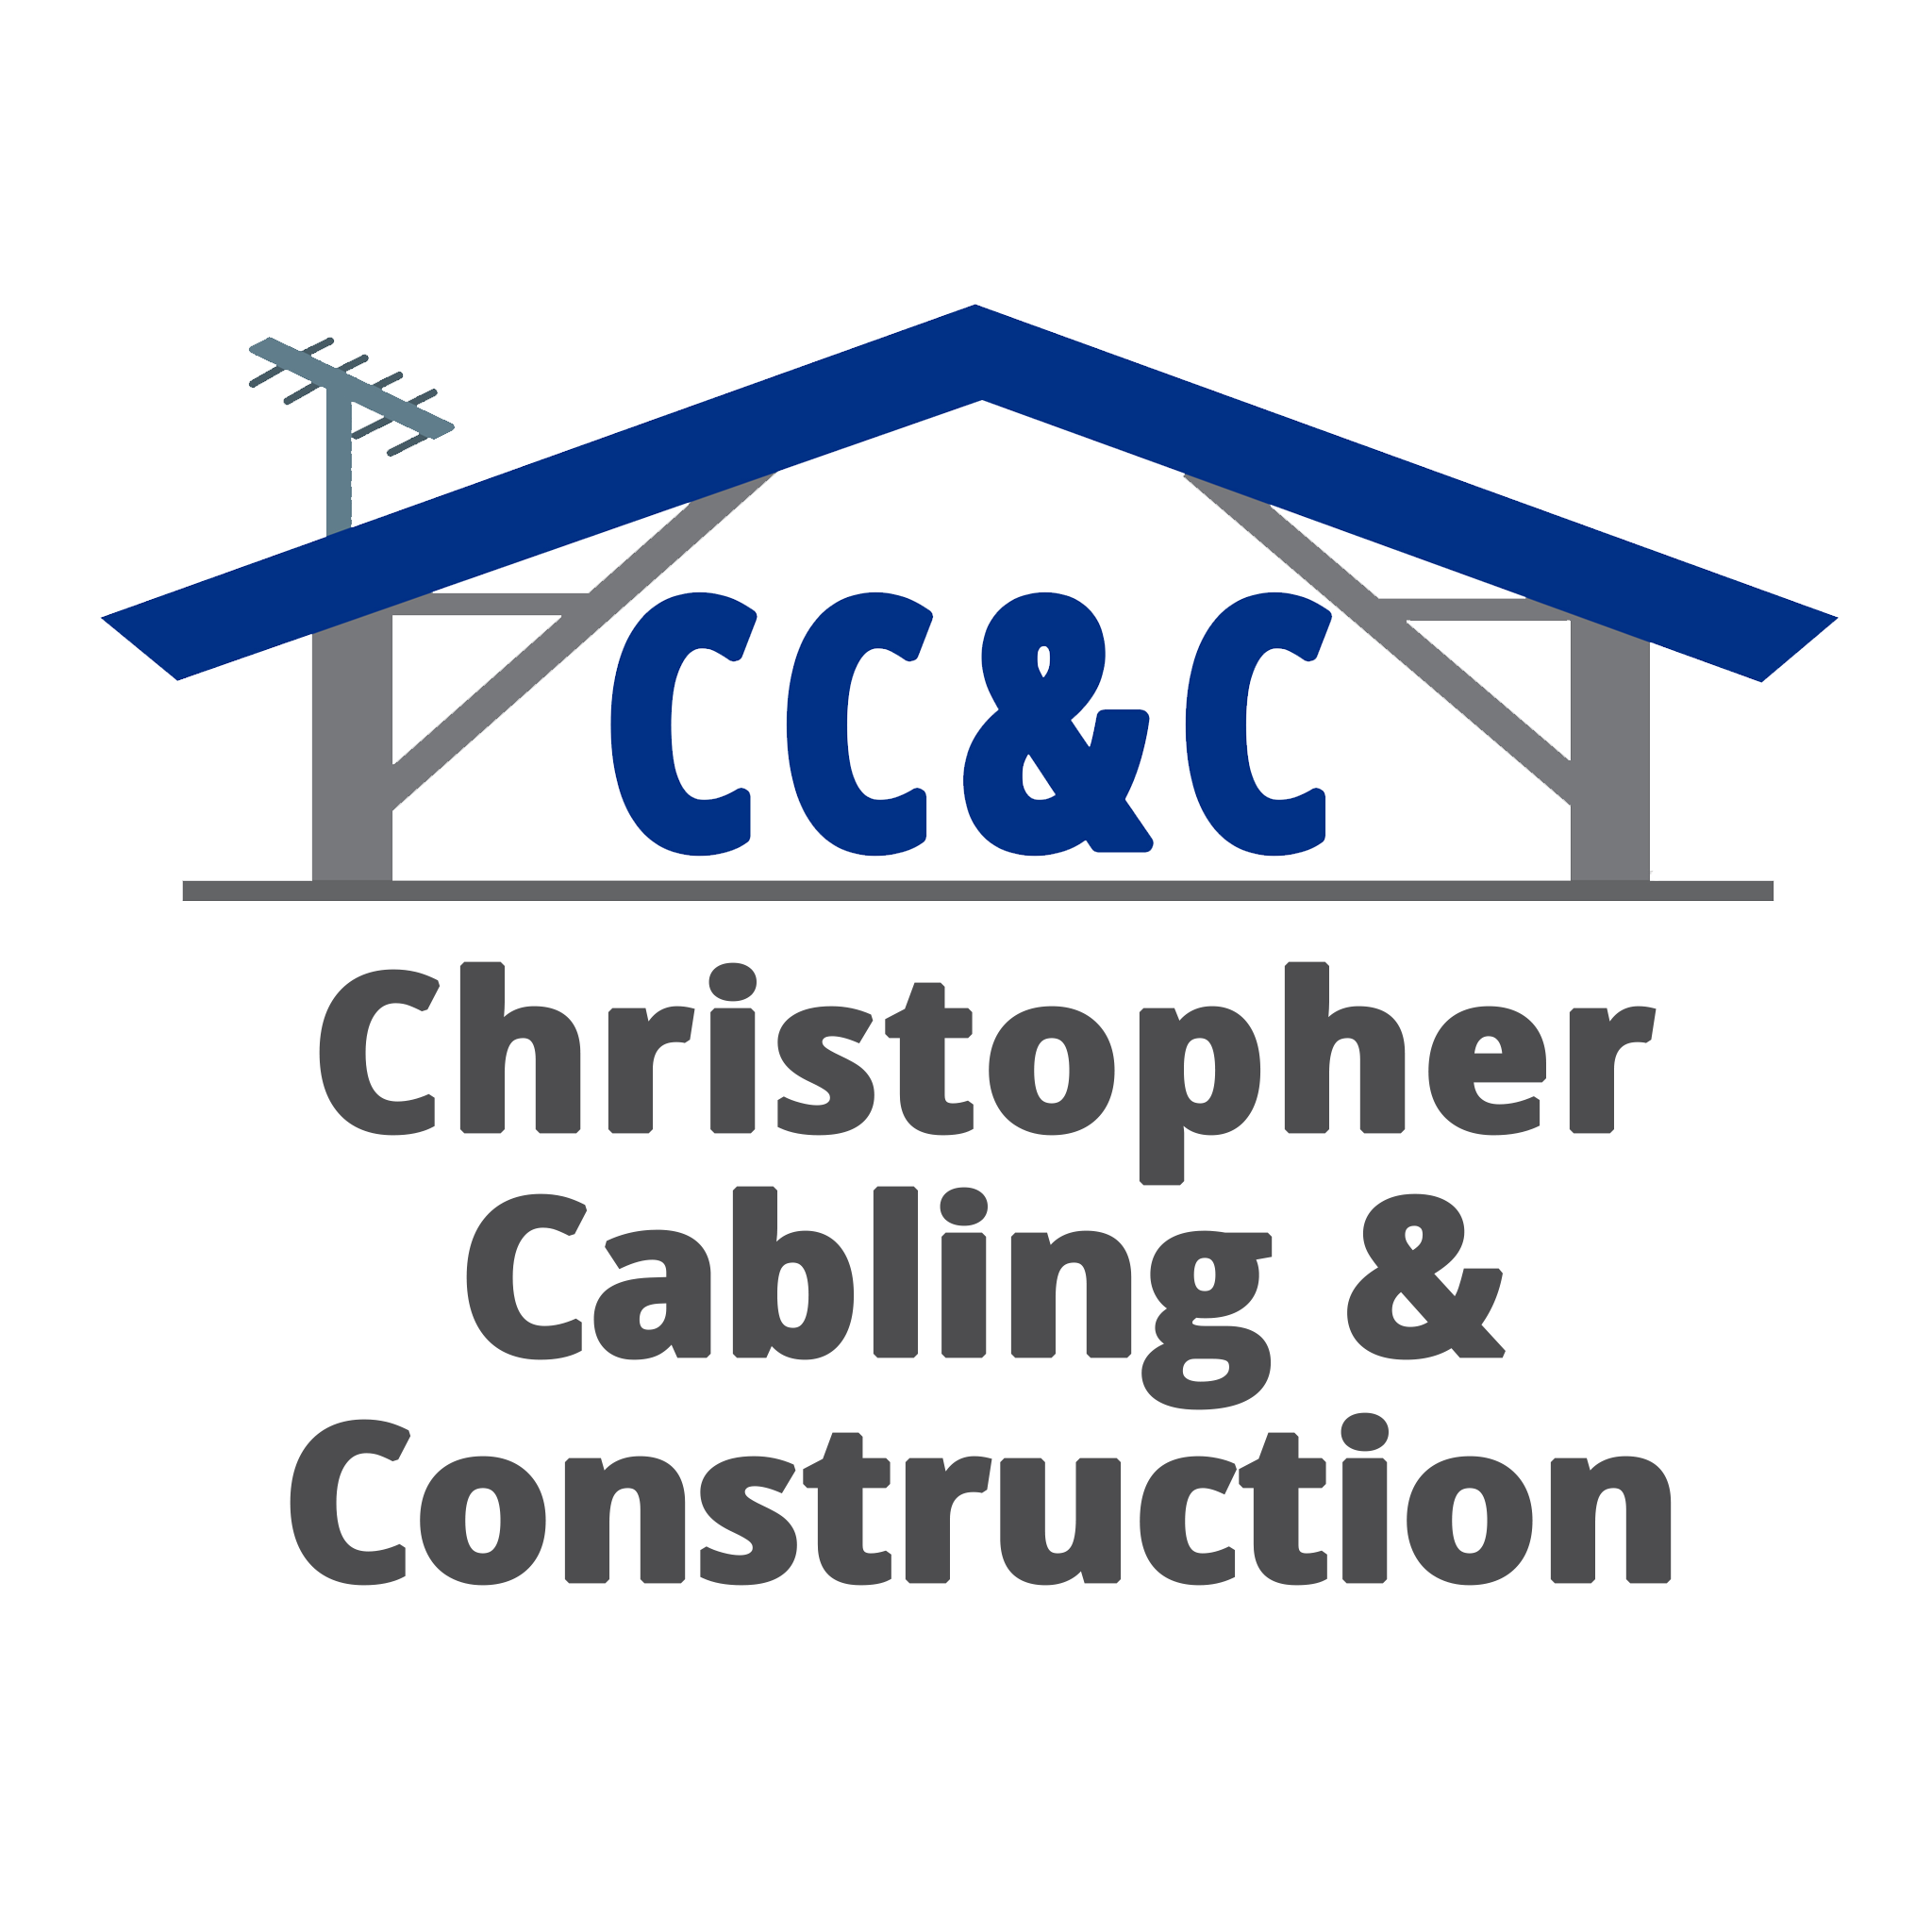 christopher cabling and construction social